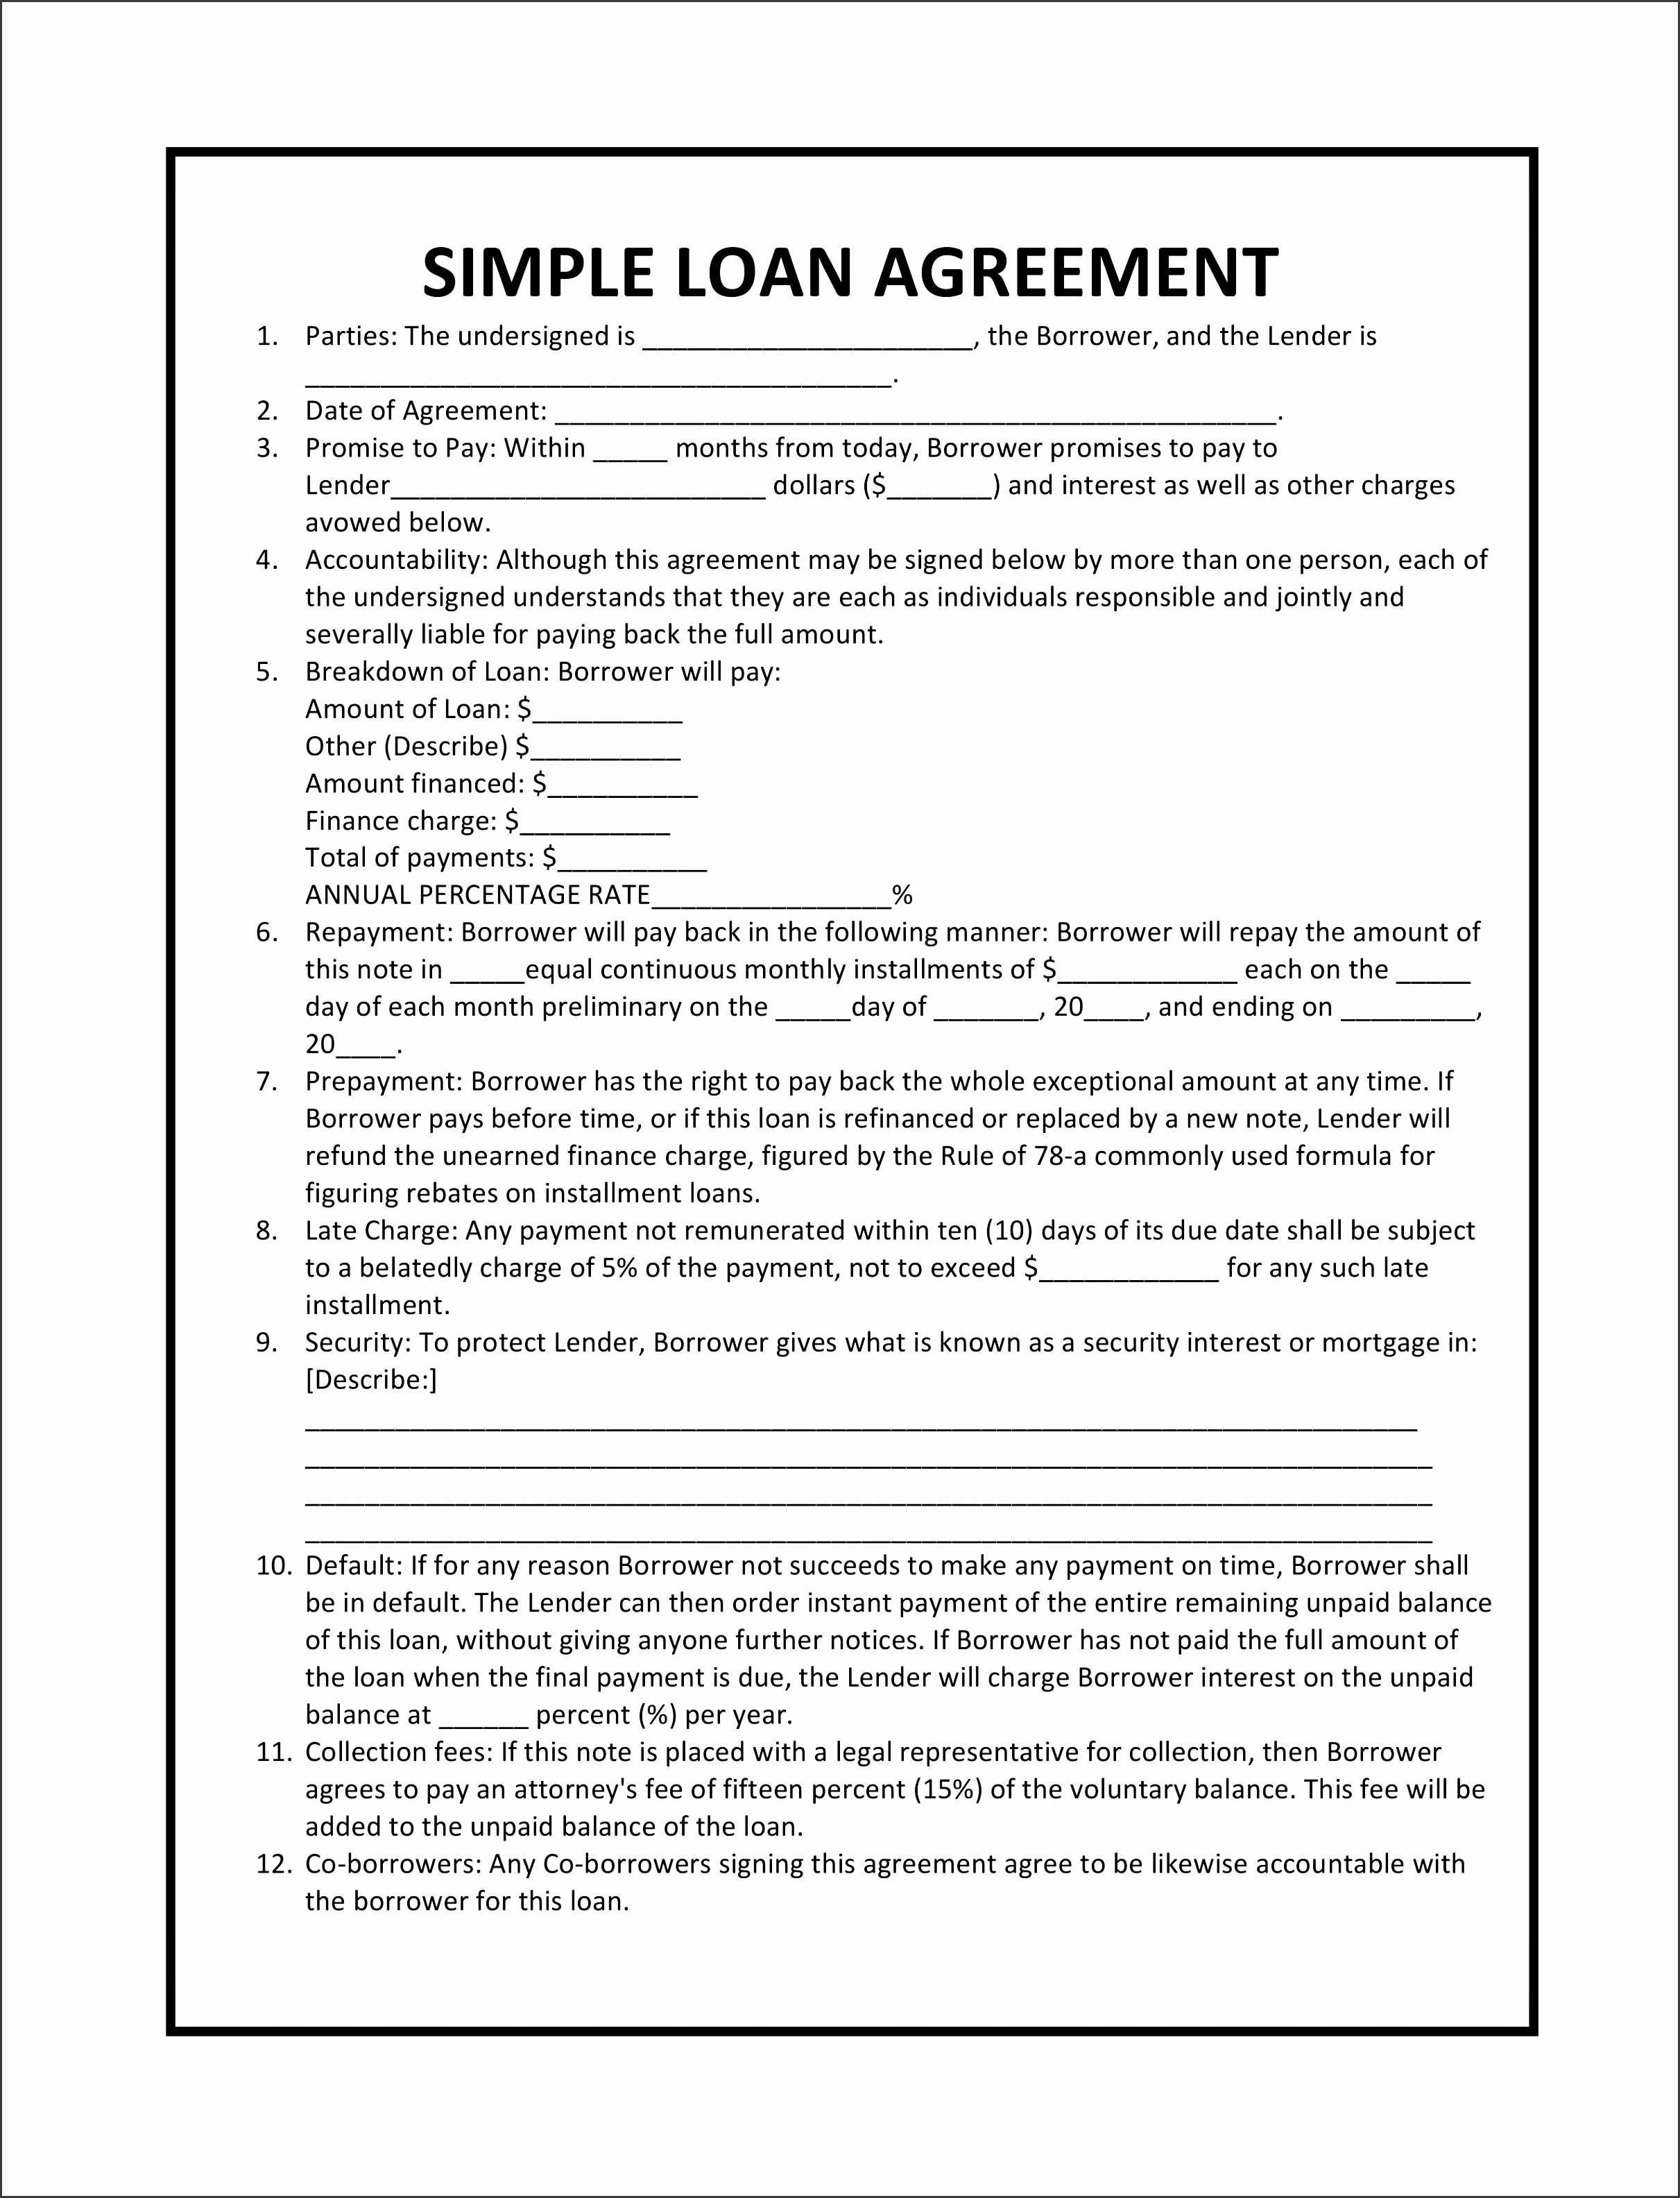 Simple Partnership Agreement Template Unique 8 Simple Partnership Agreement Template Sampletemplatess